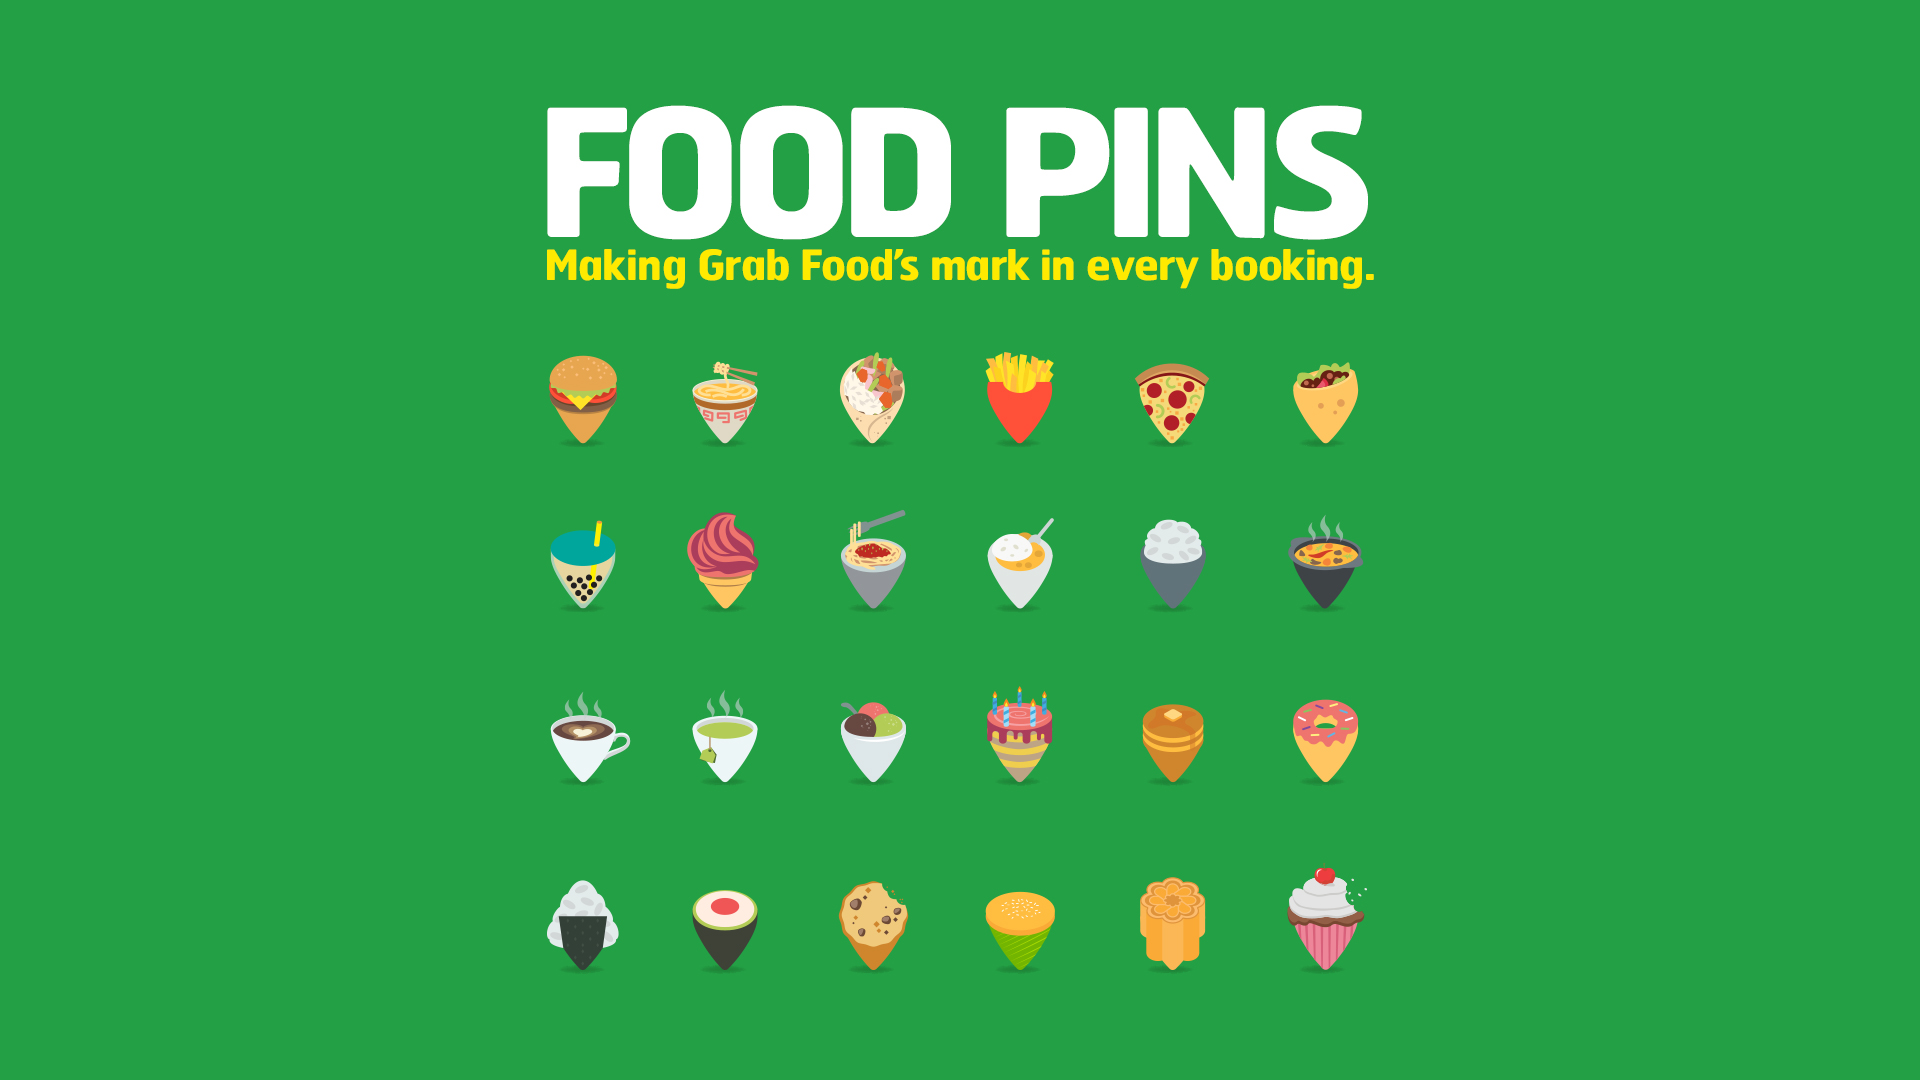 """Cannes Digital Young Lions Winner 2019 """"Food Pins"""" - Lance"""